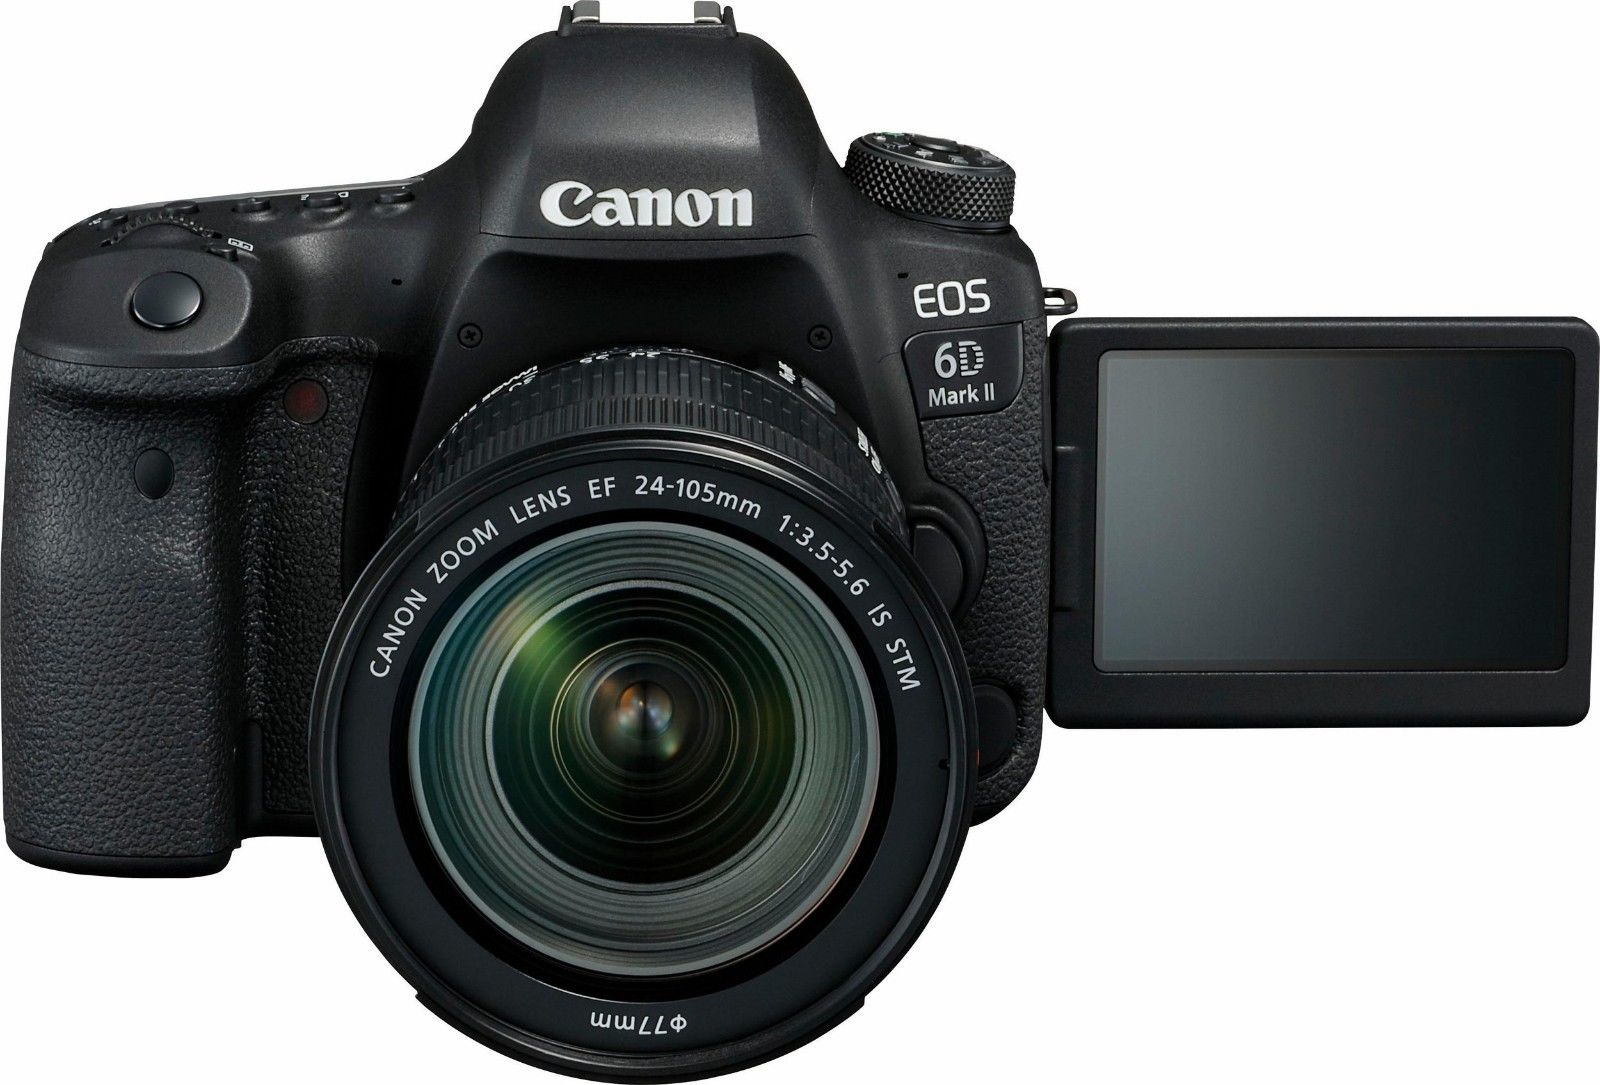 Canon EOS 6D Mark II 26.2MP Digitalkamera - Schwarz (Kit mit EF 24-105mm...